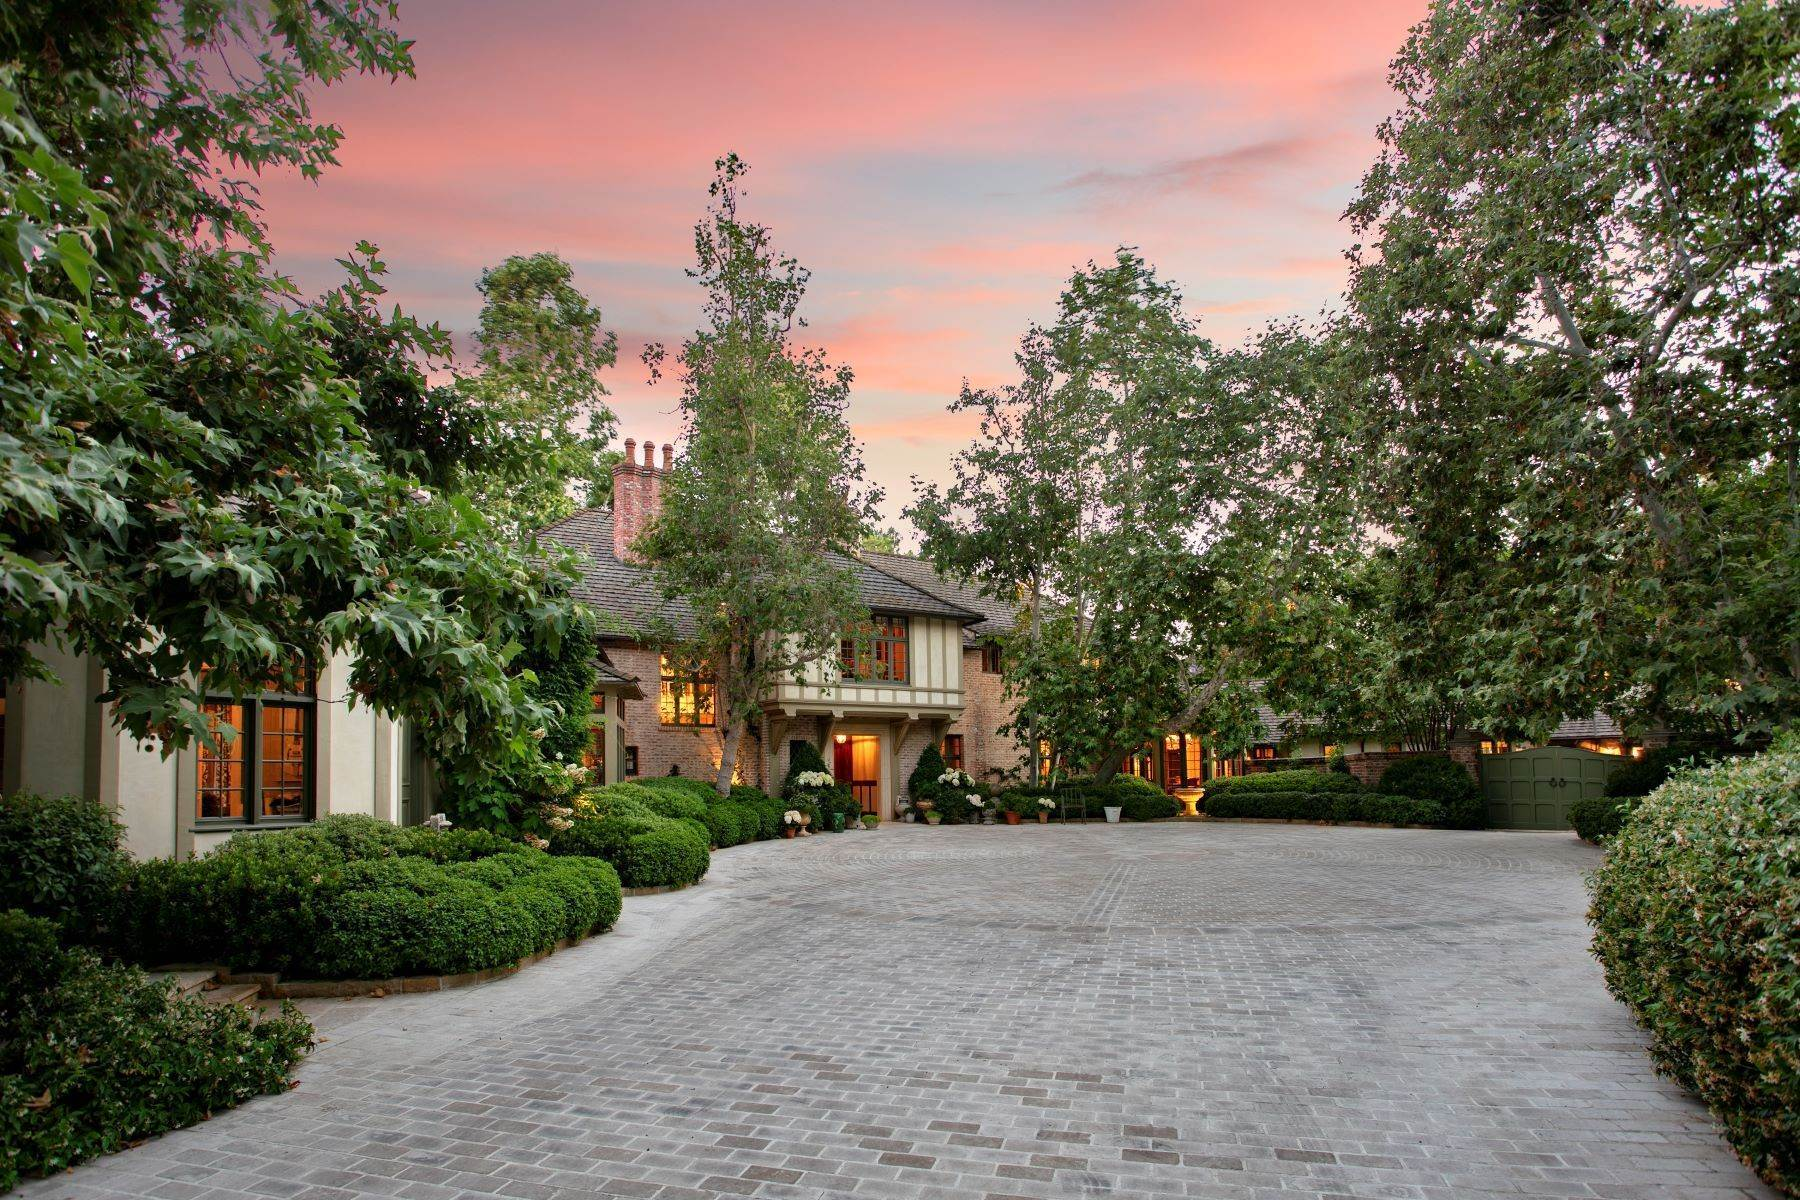 Property for Sale at Beverly Hills English Estate 1201 Tower Grove Drive Beverly Hills, California 90210 United States